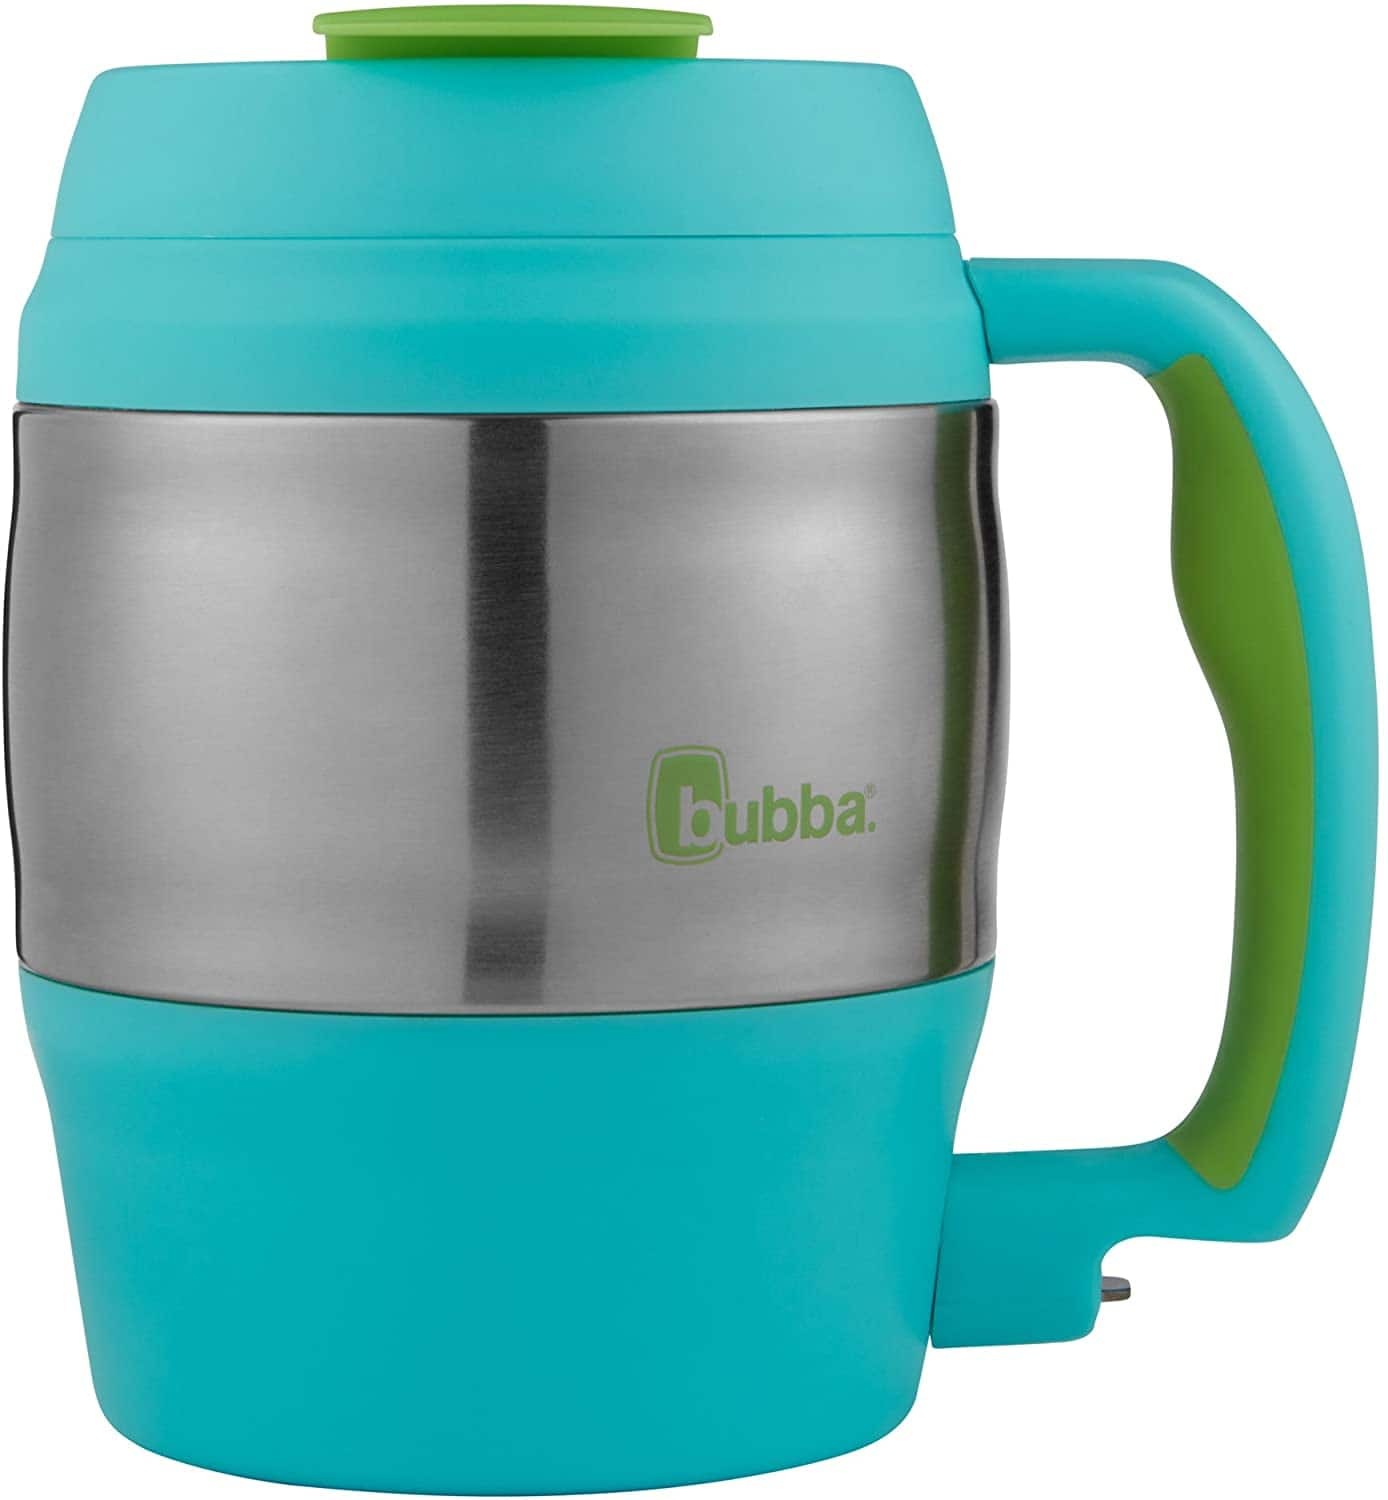 Amazon: $5 off $25 on select Contigo & Bubba Bottles